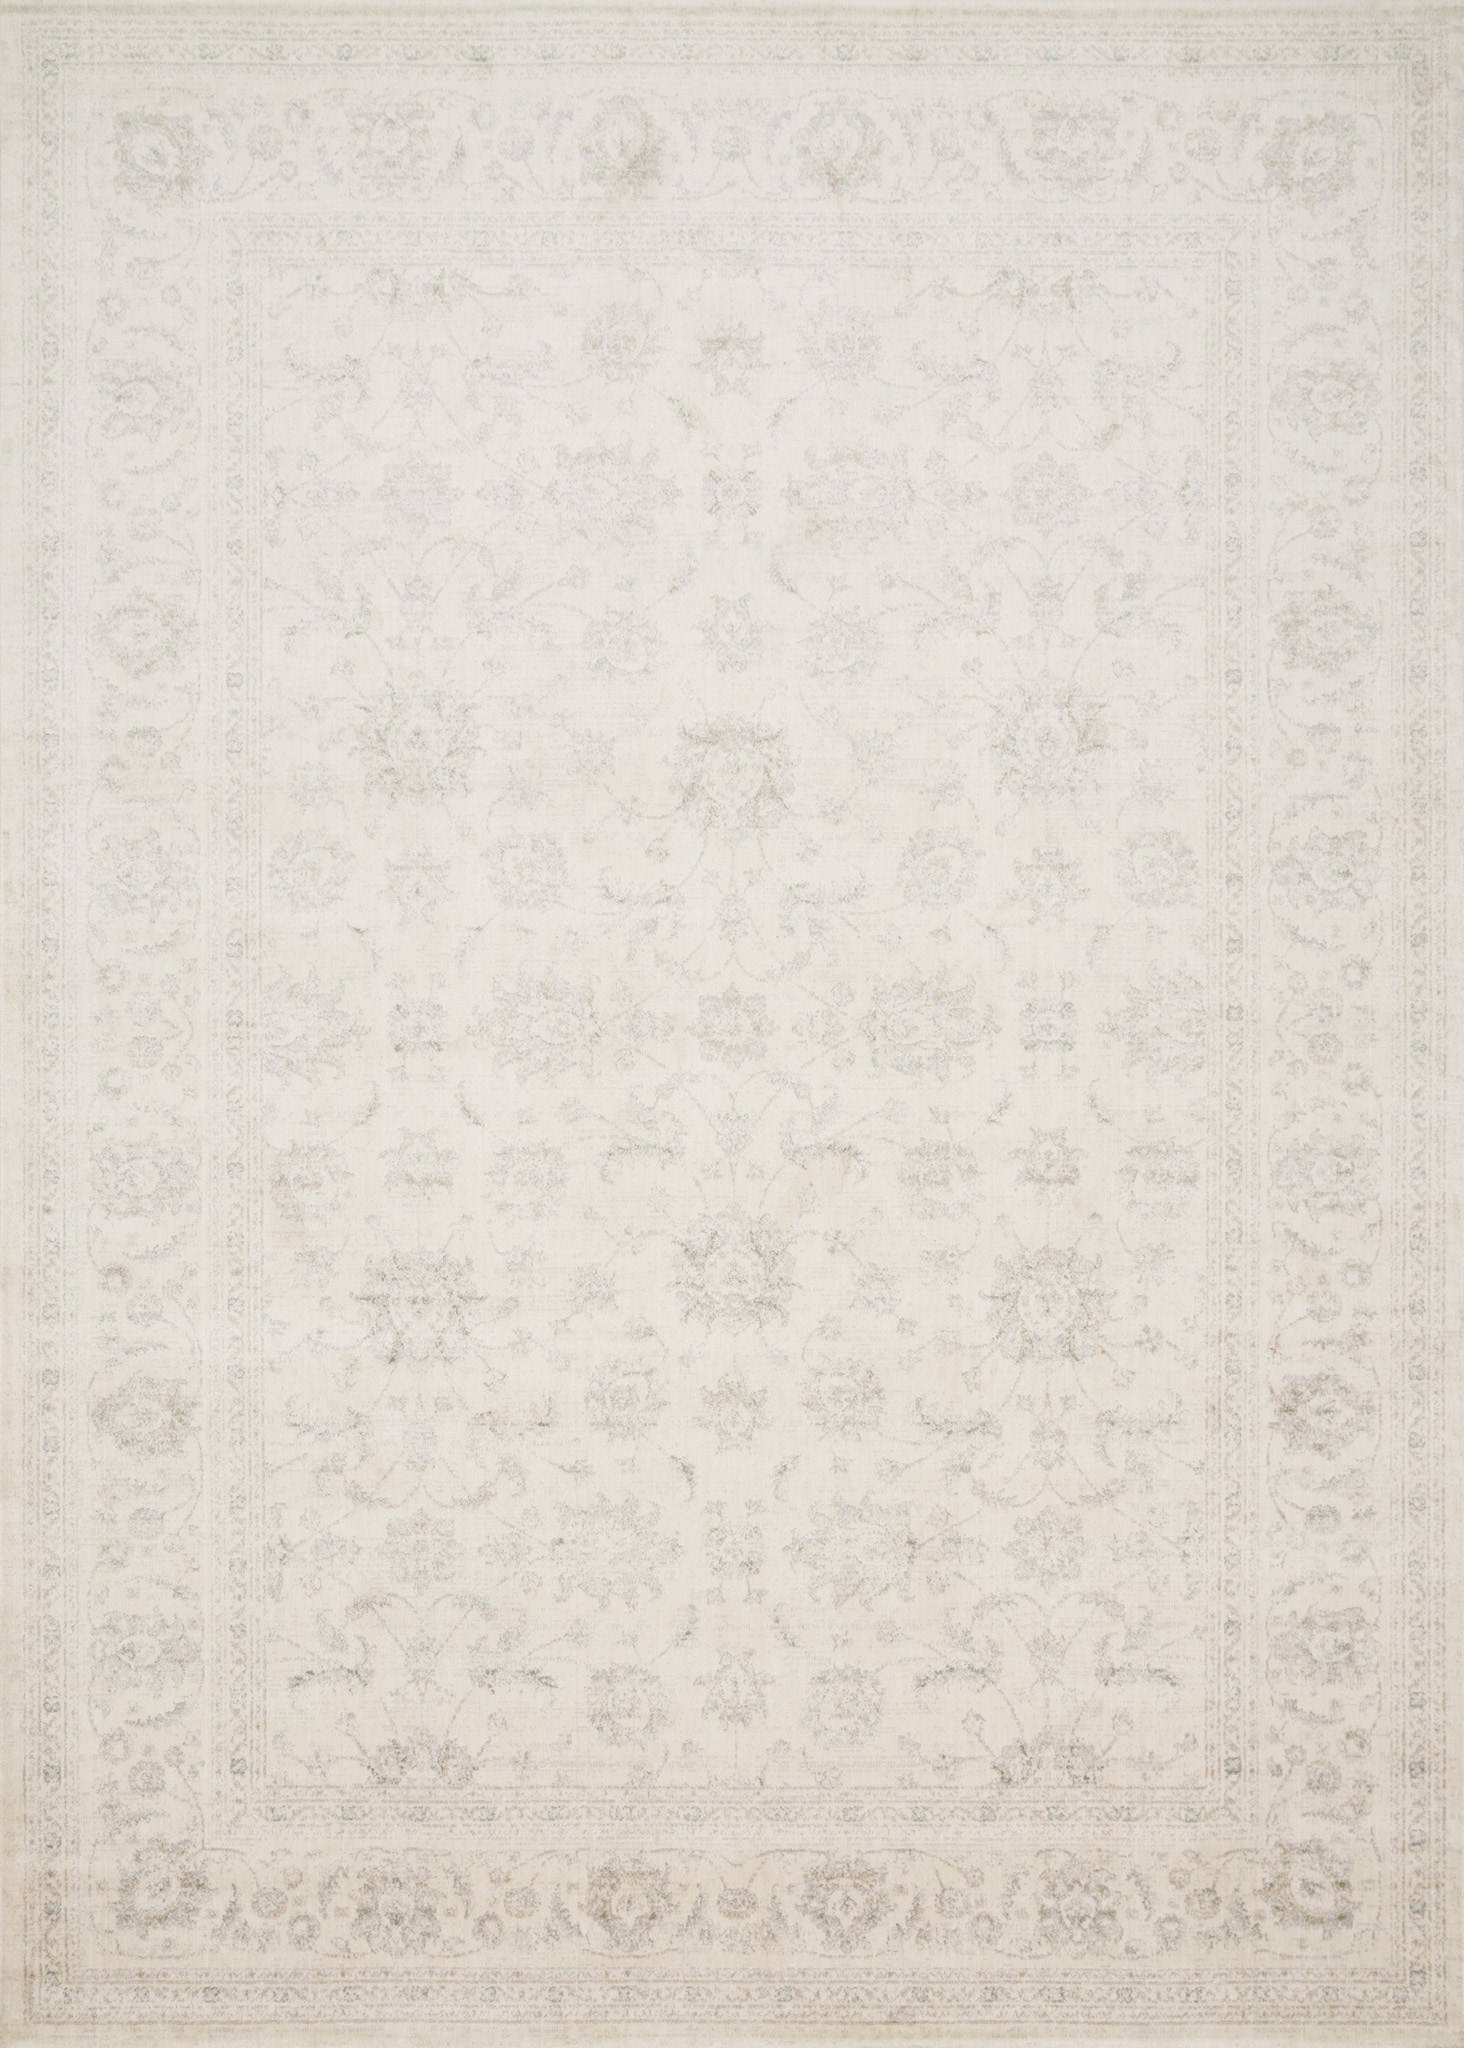 Loloi Griffin Transitional Rugs Gf-04